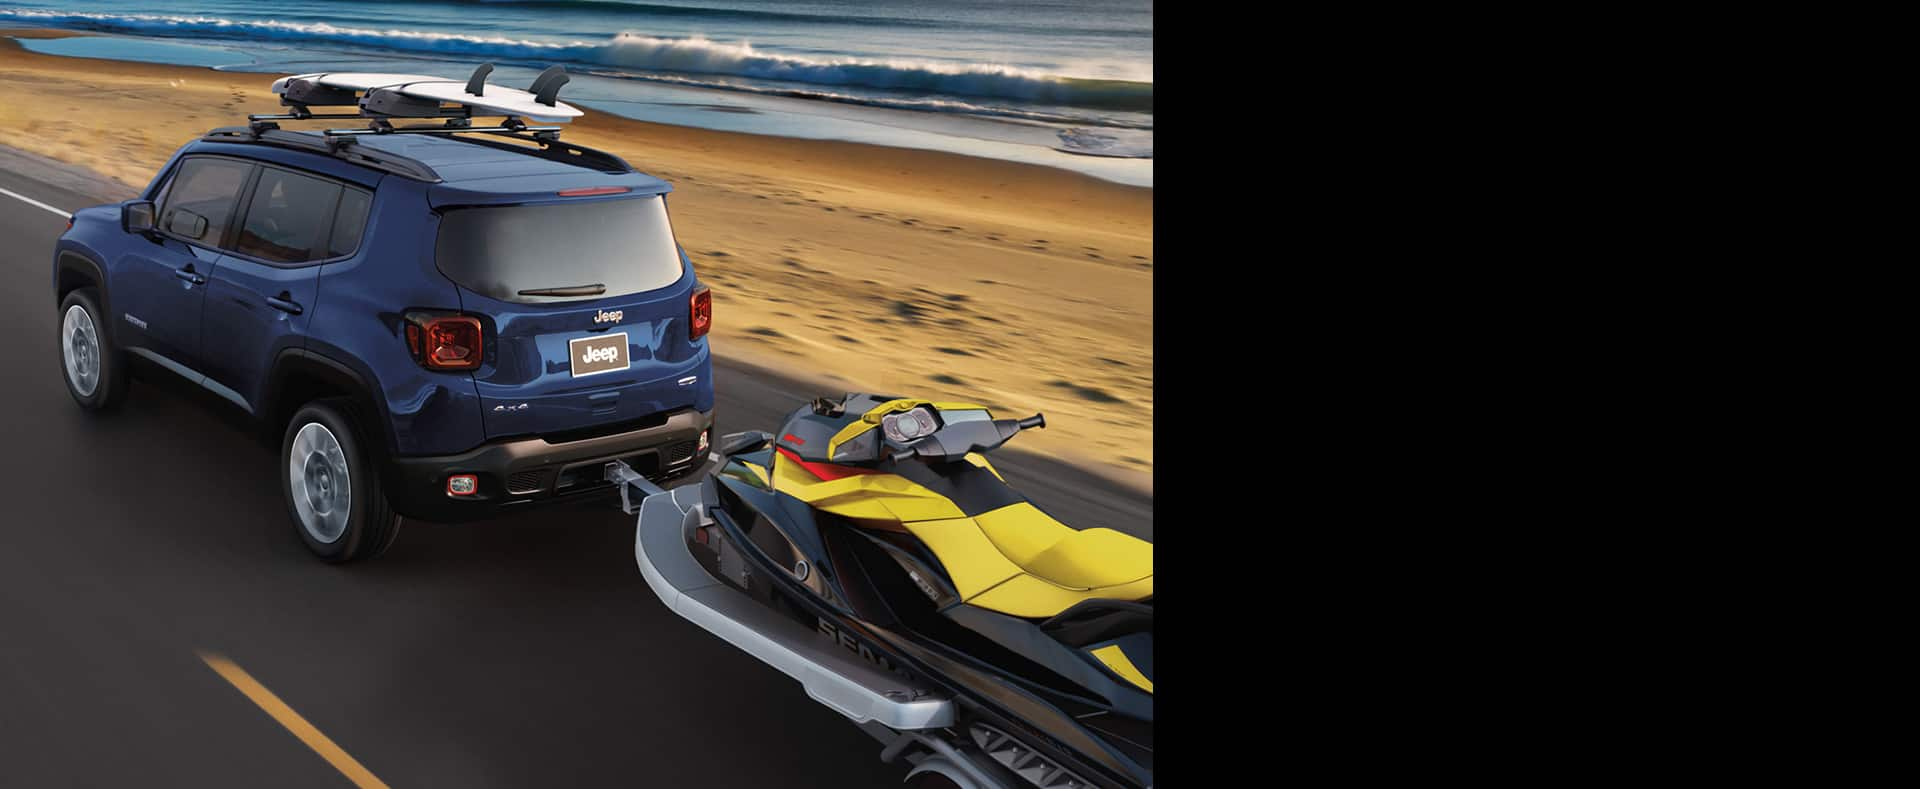 2020 Jeep Renegade tows an ATV and carries a surfboard on its roof rack as it is driven on a beachside road.